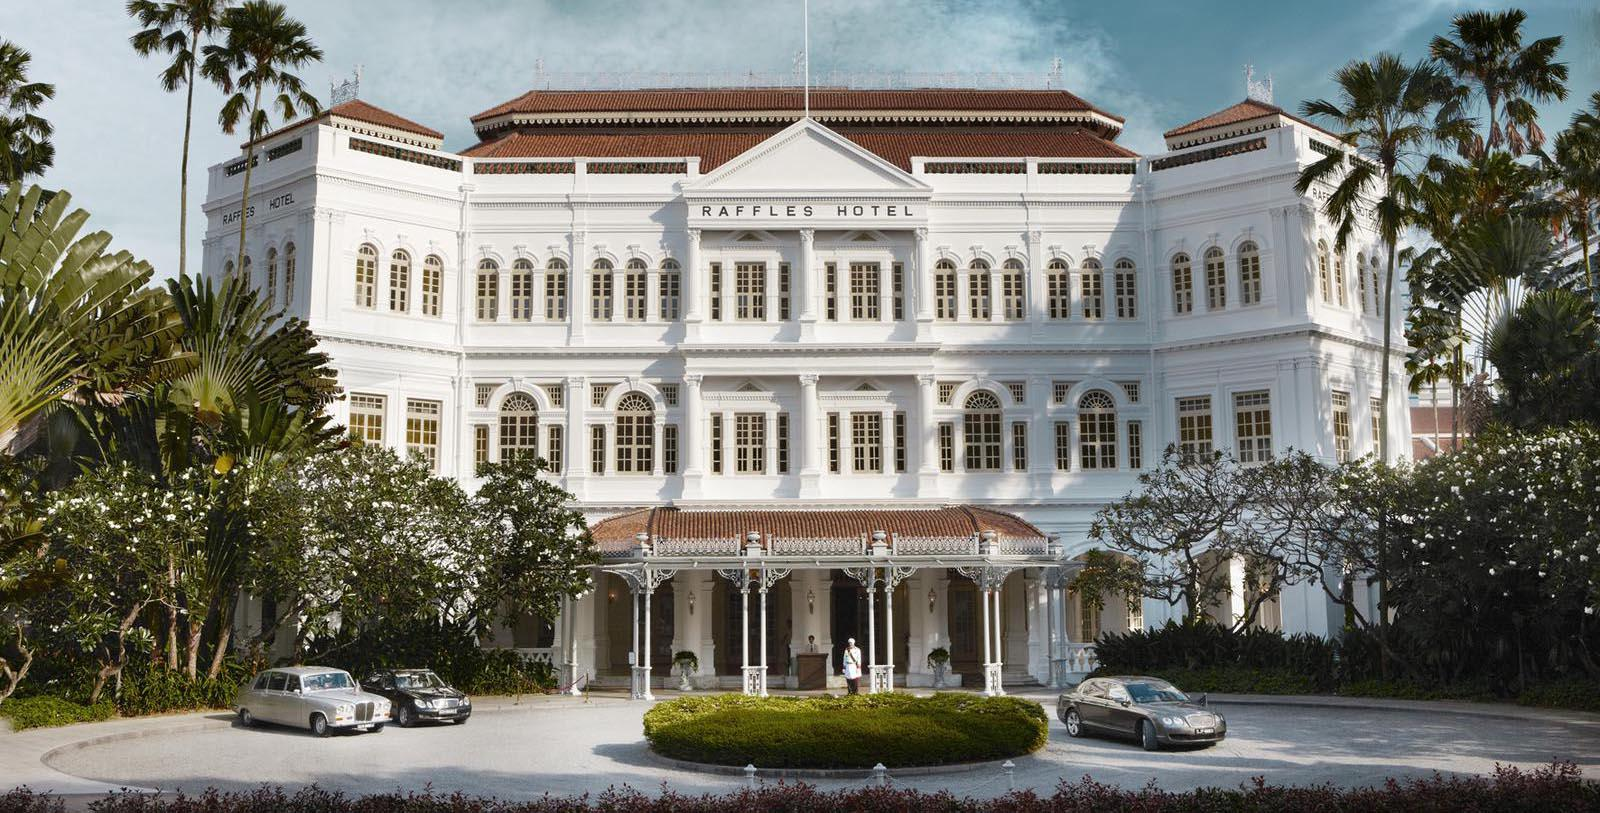 Image of Hotel Exterior Raffles Singapore, 1887, Member of Historic Hotels Worldwide, in Singapore, Experience